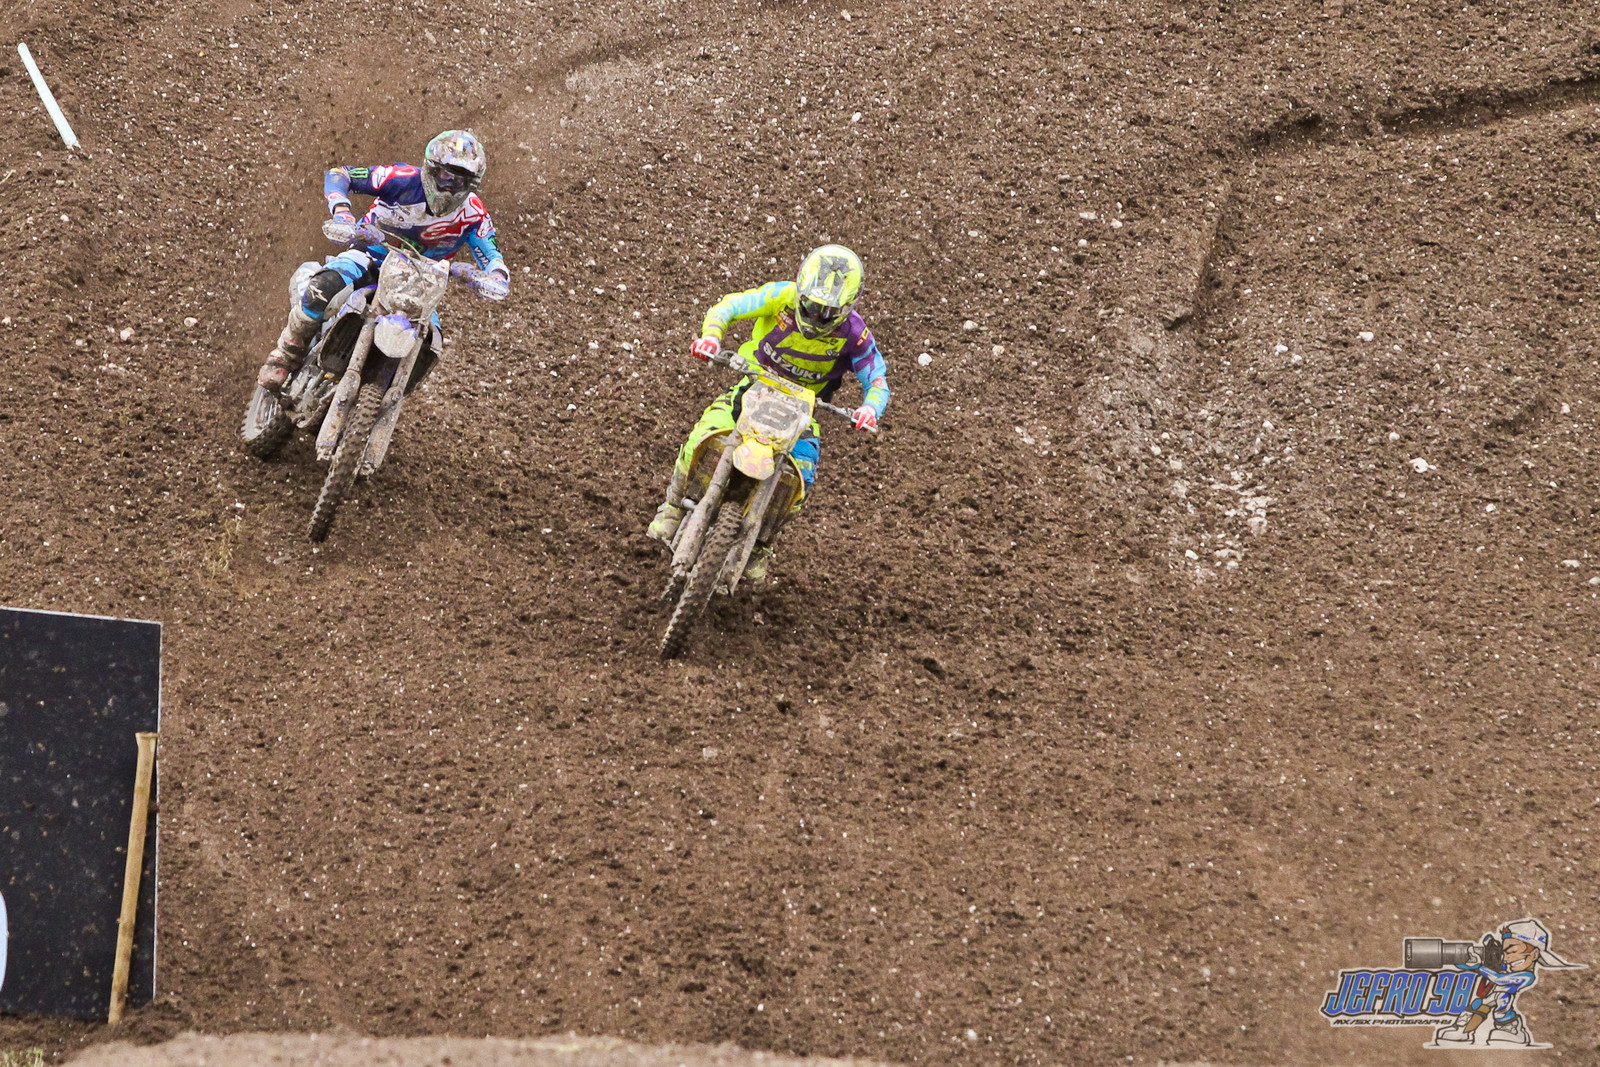 Febvre vs Townley - Photo Gallery: MXGP of Great Britain - Motocross Pictures - Vital MX